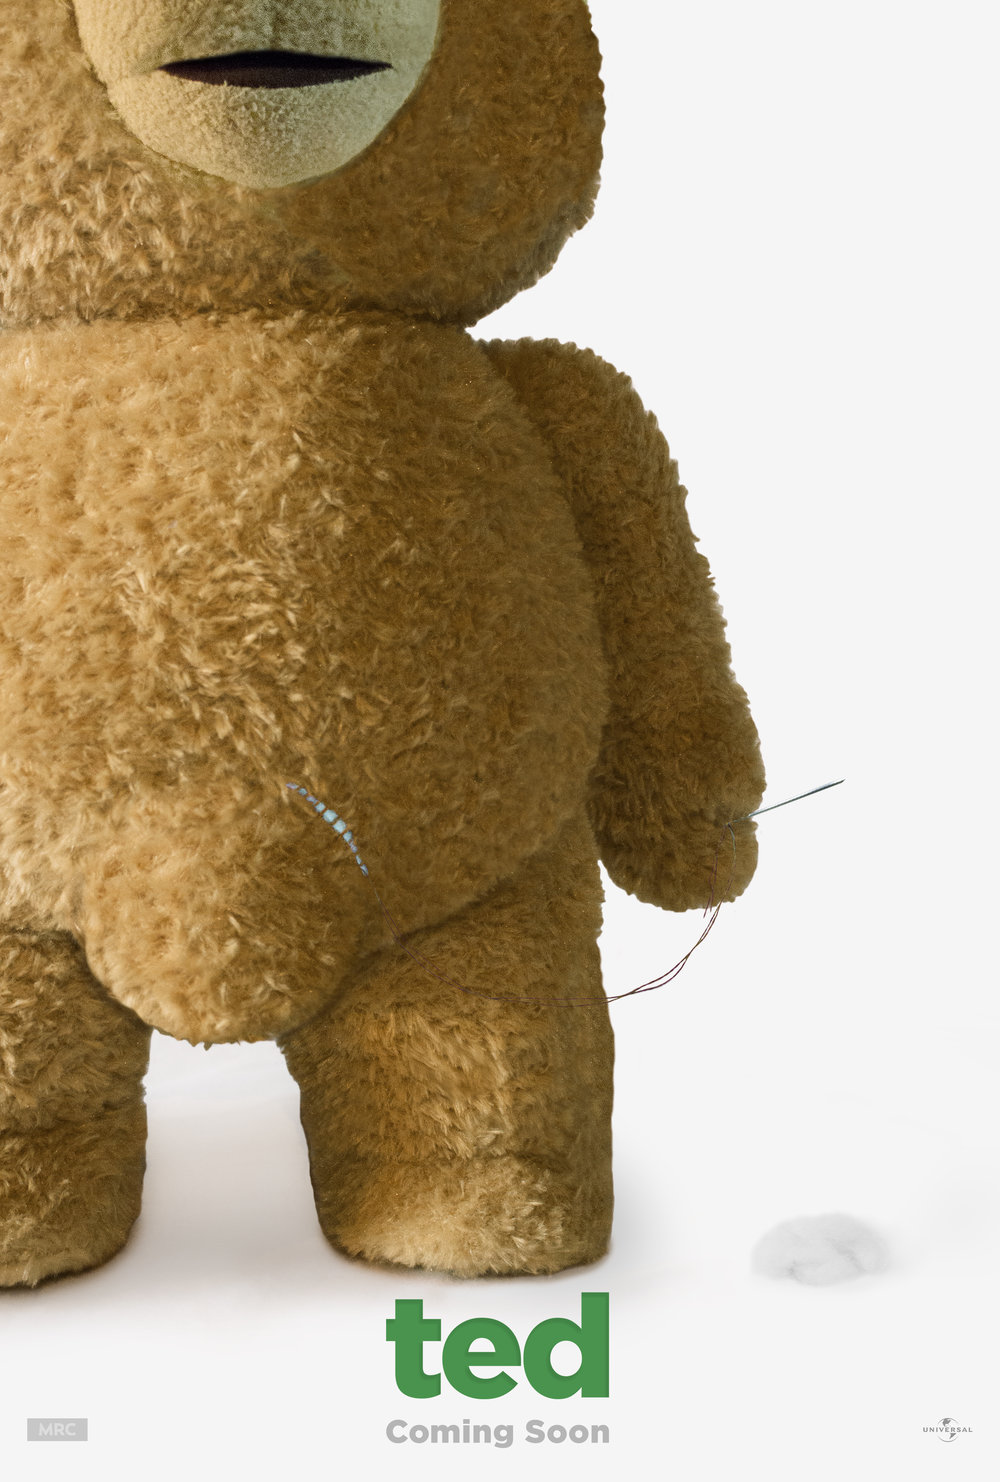 Ted-Frontal-2.5-Credits.jpg